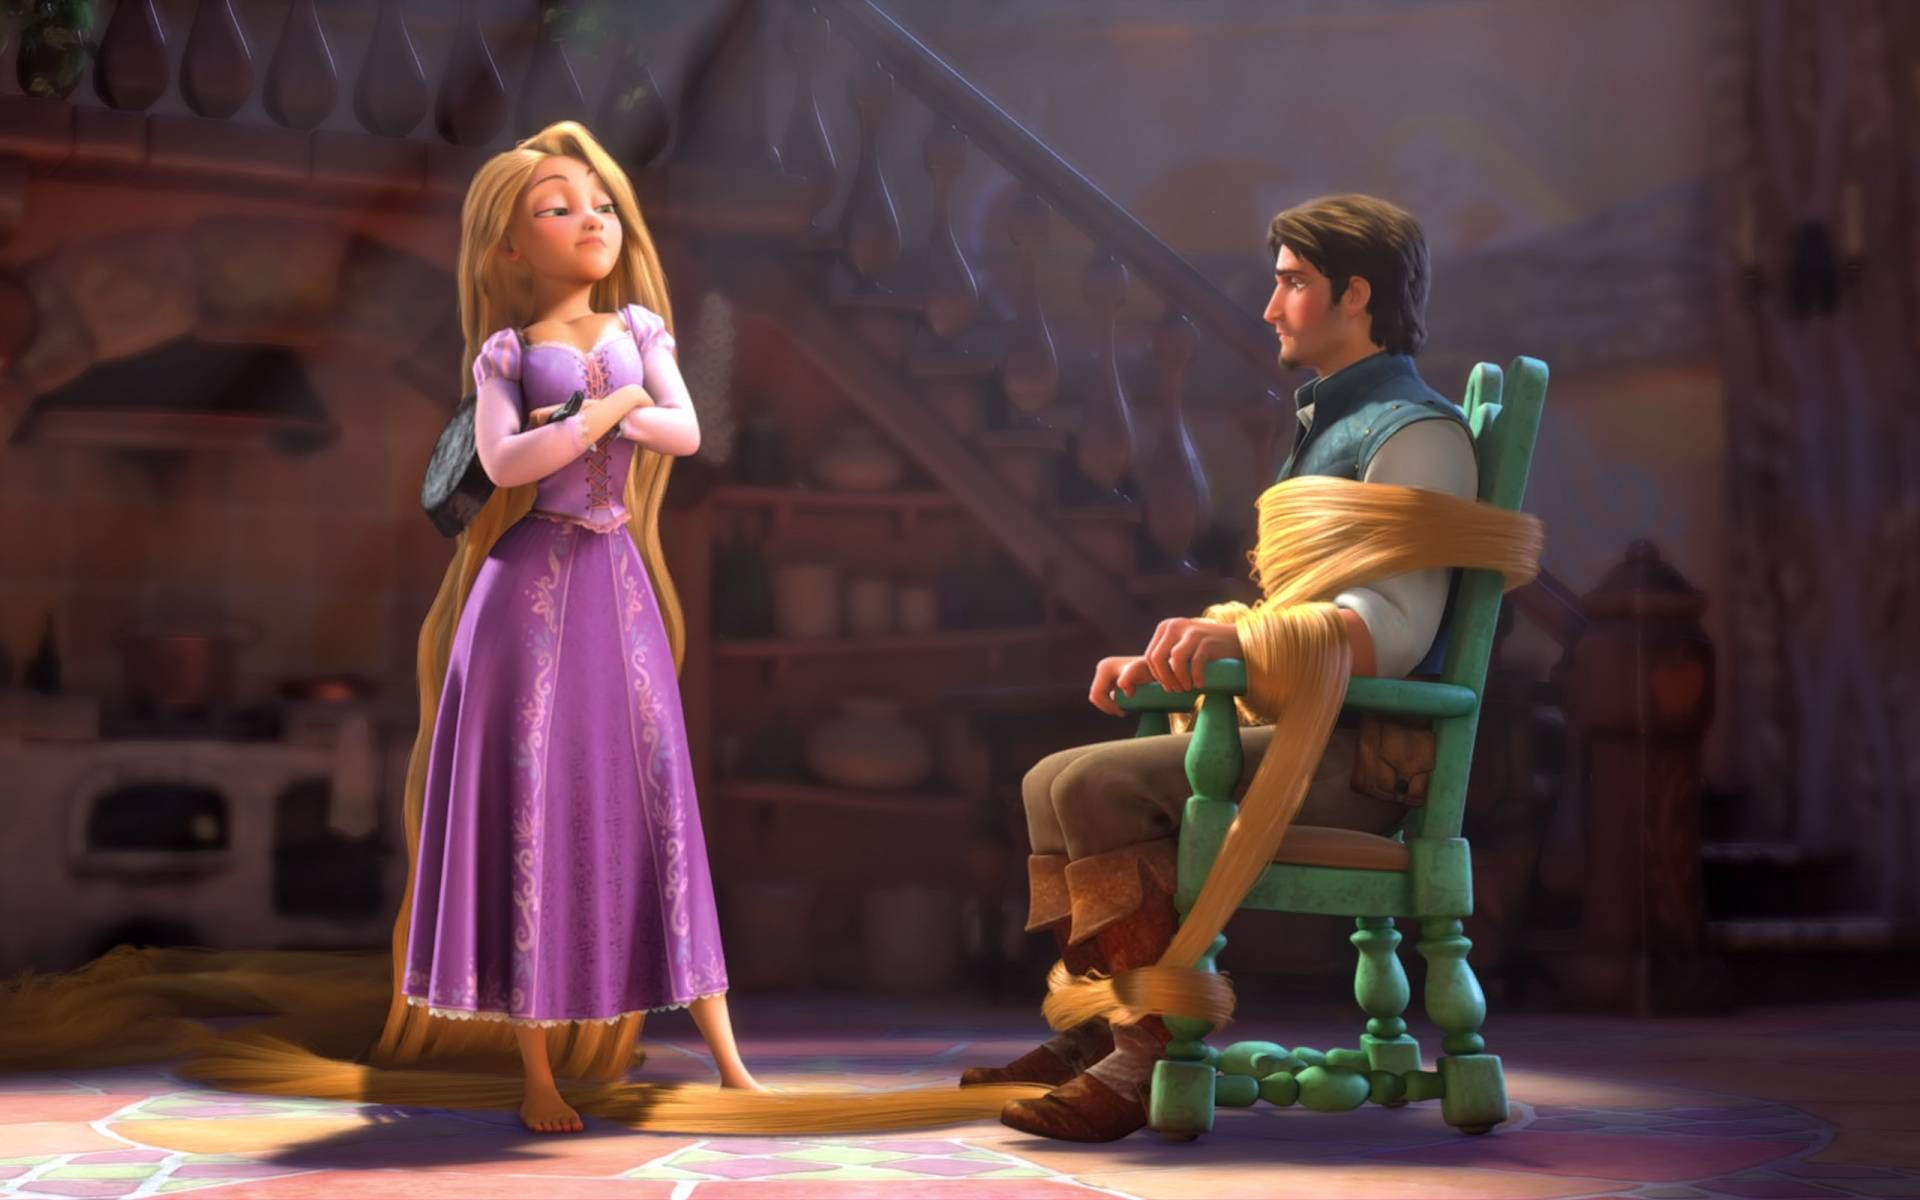 Tangled Rapunzel And Flynn Rider 1920x1200